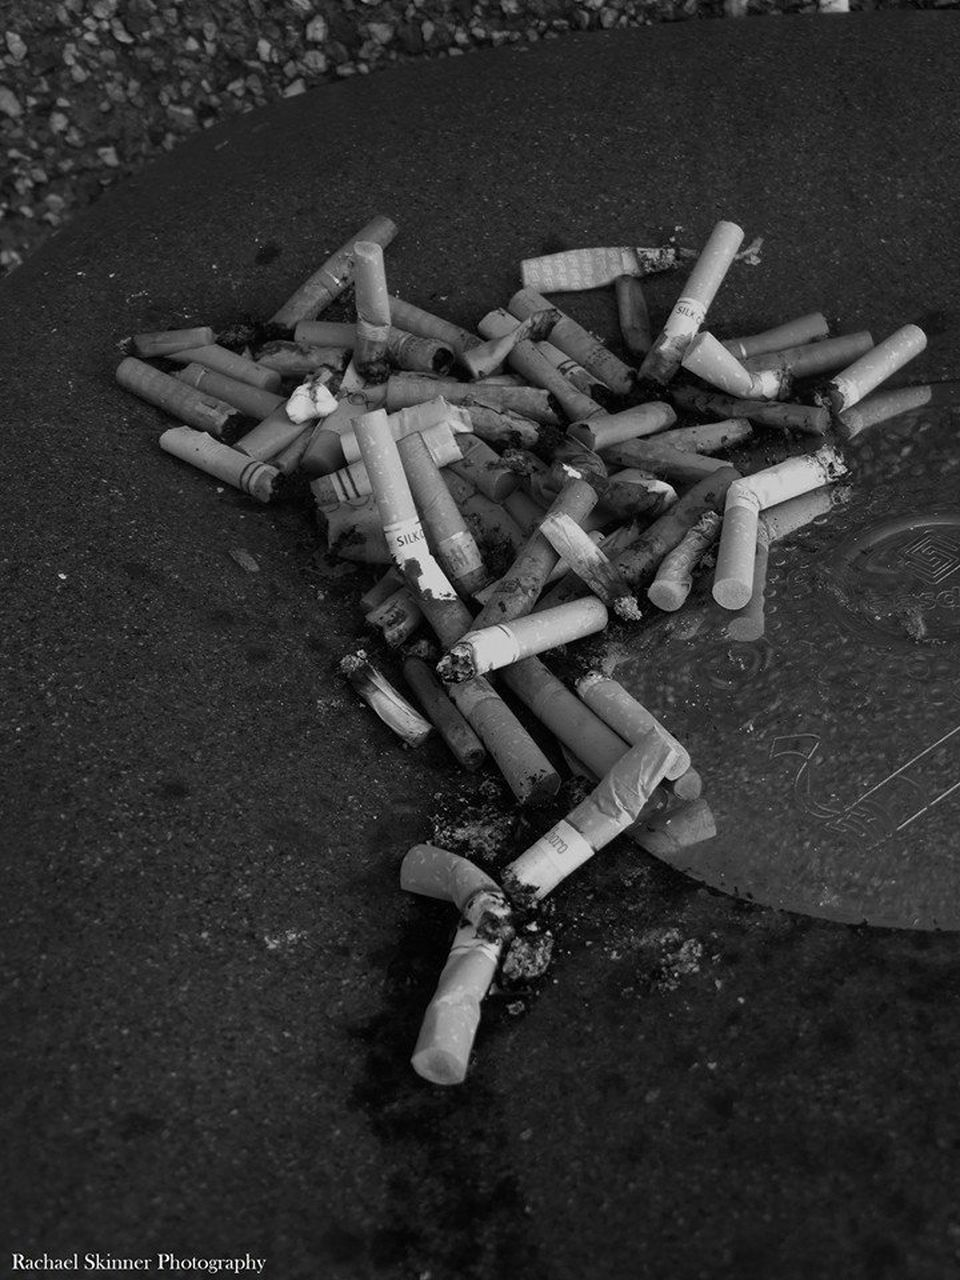 smoking issues, cigarette, bad habit, cigarette butt, addiction, social issues, risk, ashtray, danger, ash, large group of objects, no people, close-up, outdoors, day